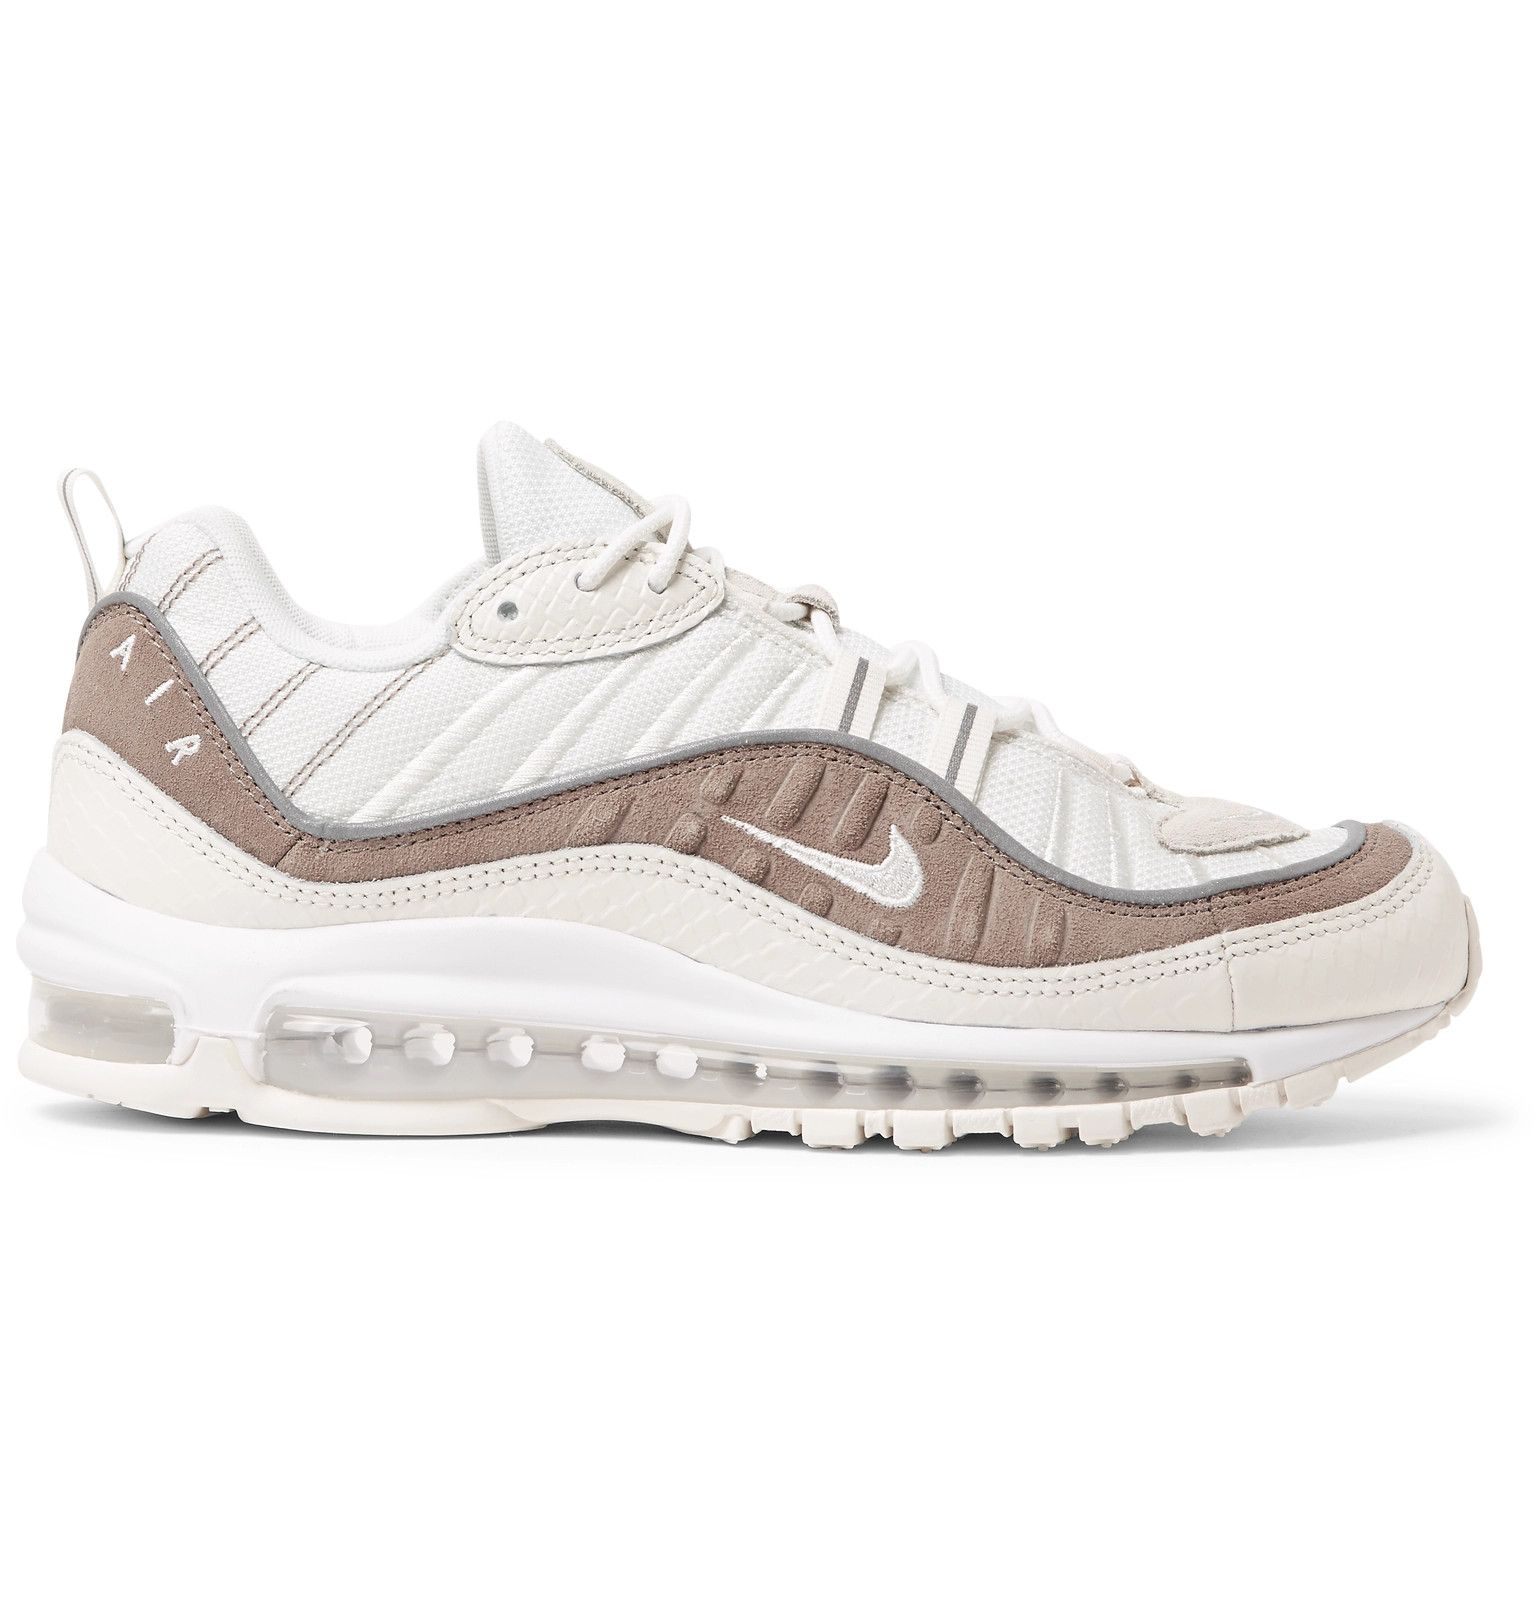 size 40 ed331 27258 Nike - Air Max 98 SE Mesh, Snake-Effect Leather and Suede Sneakers